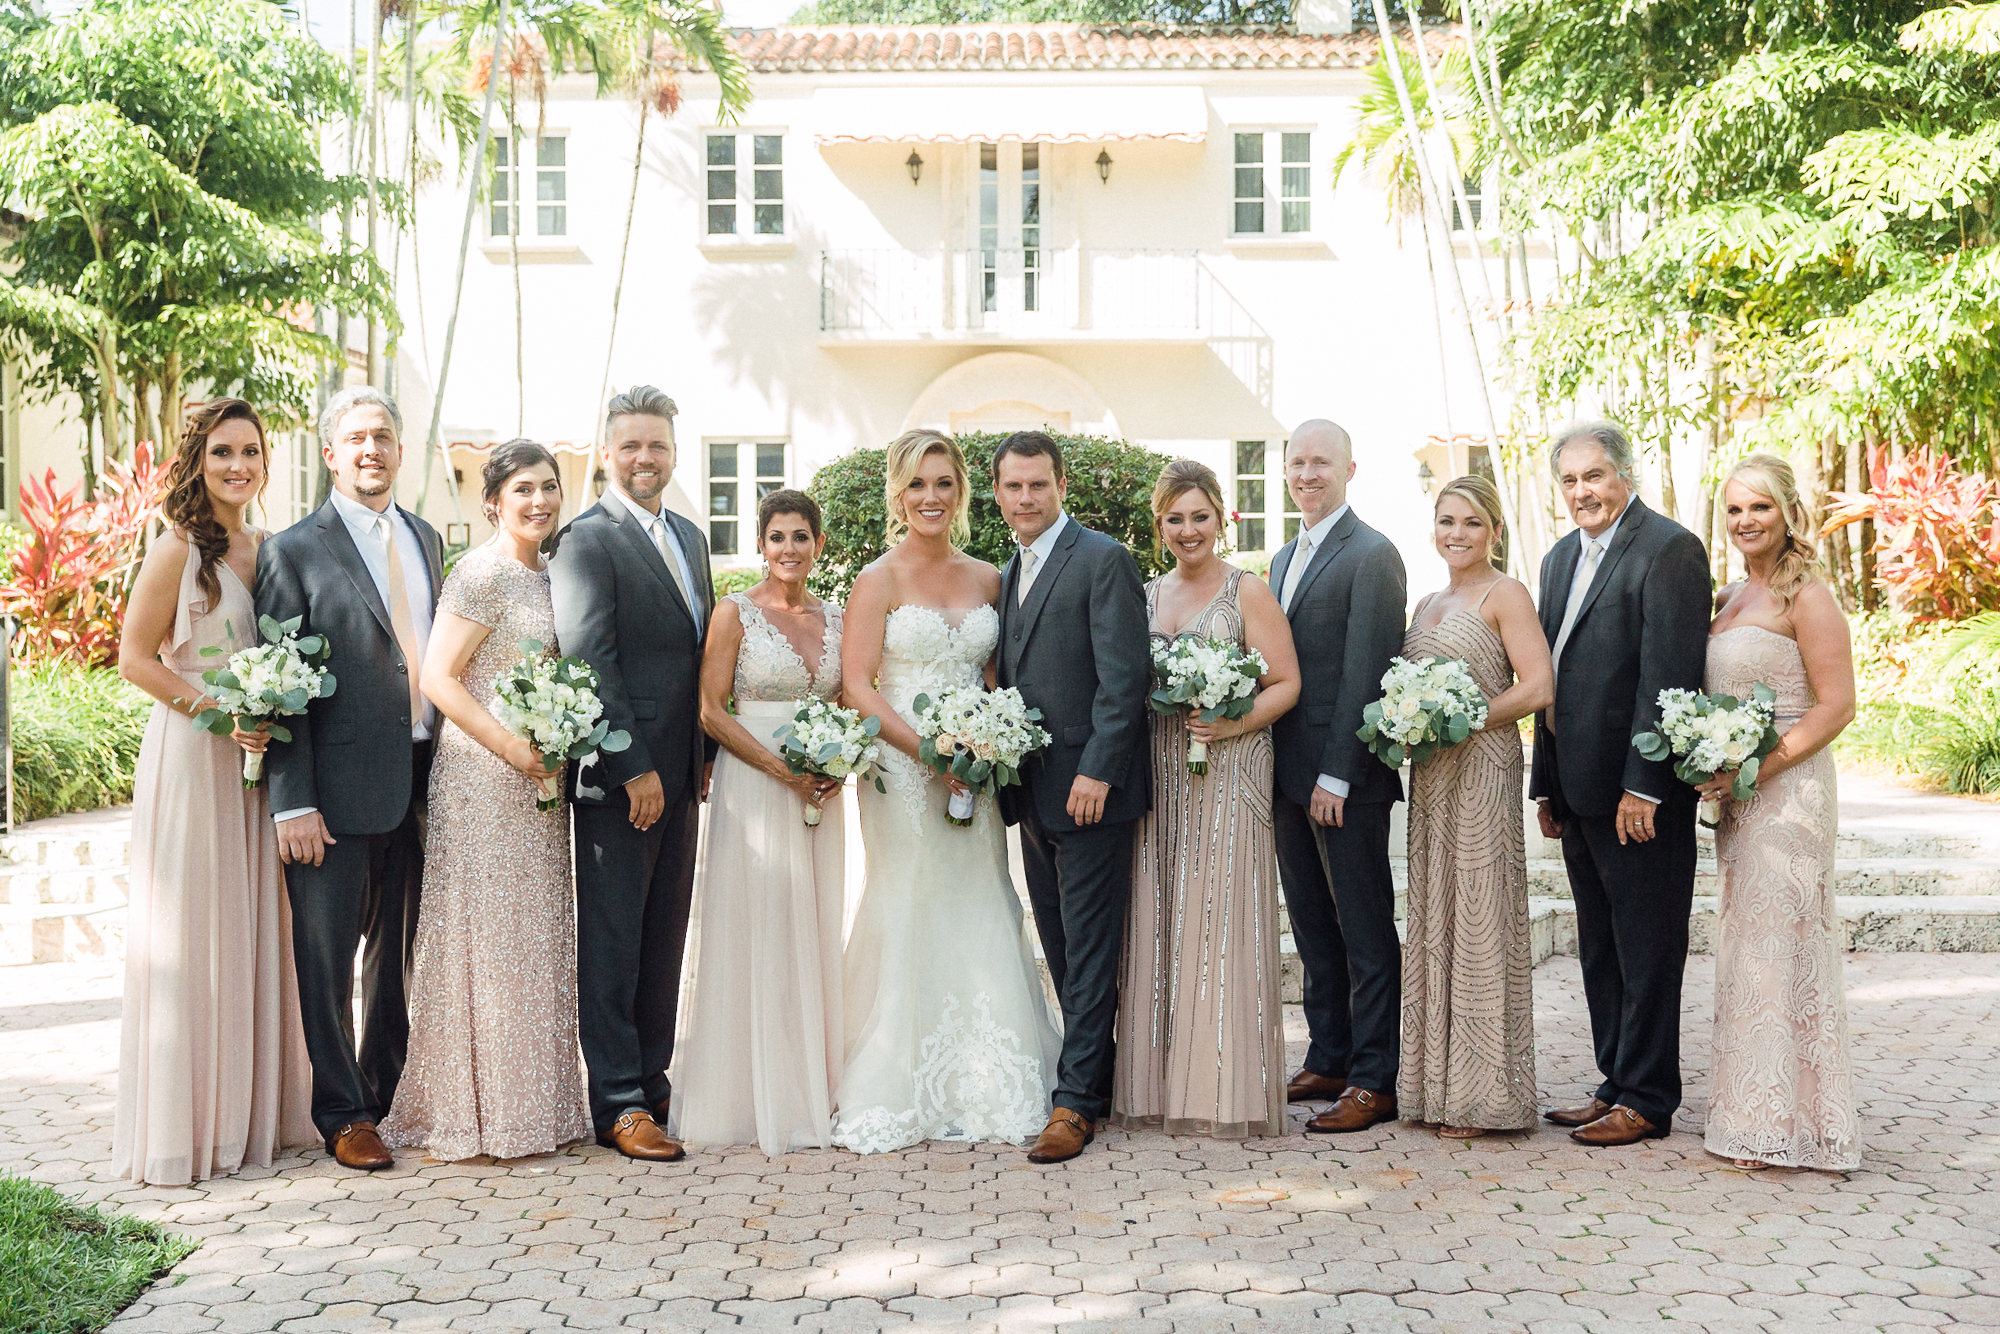 Wedding party stands outside in a straight line with couple in the center.